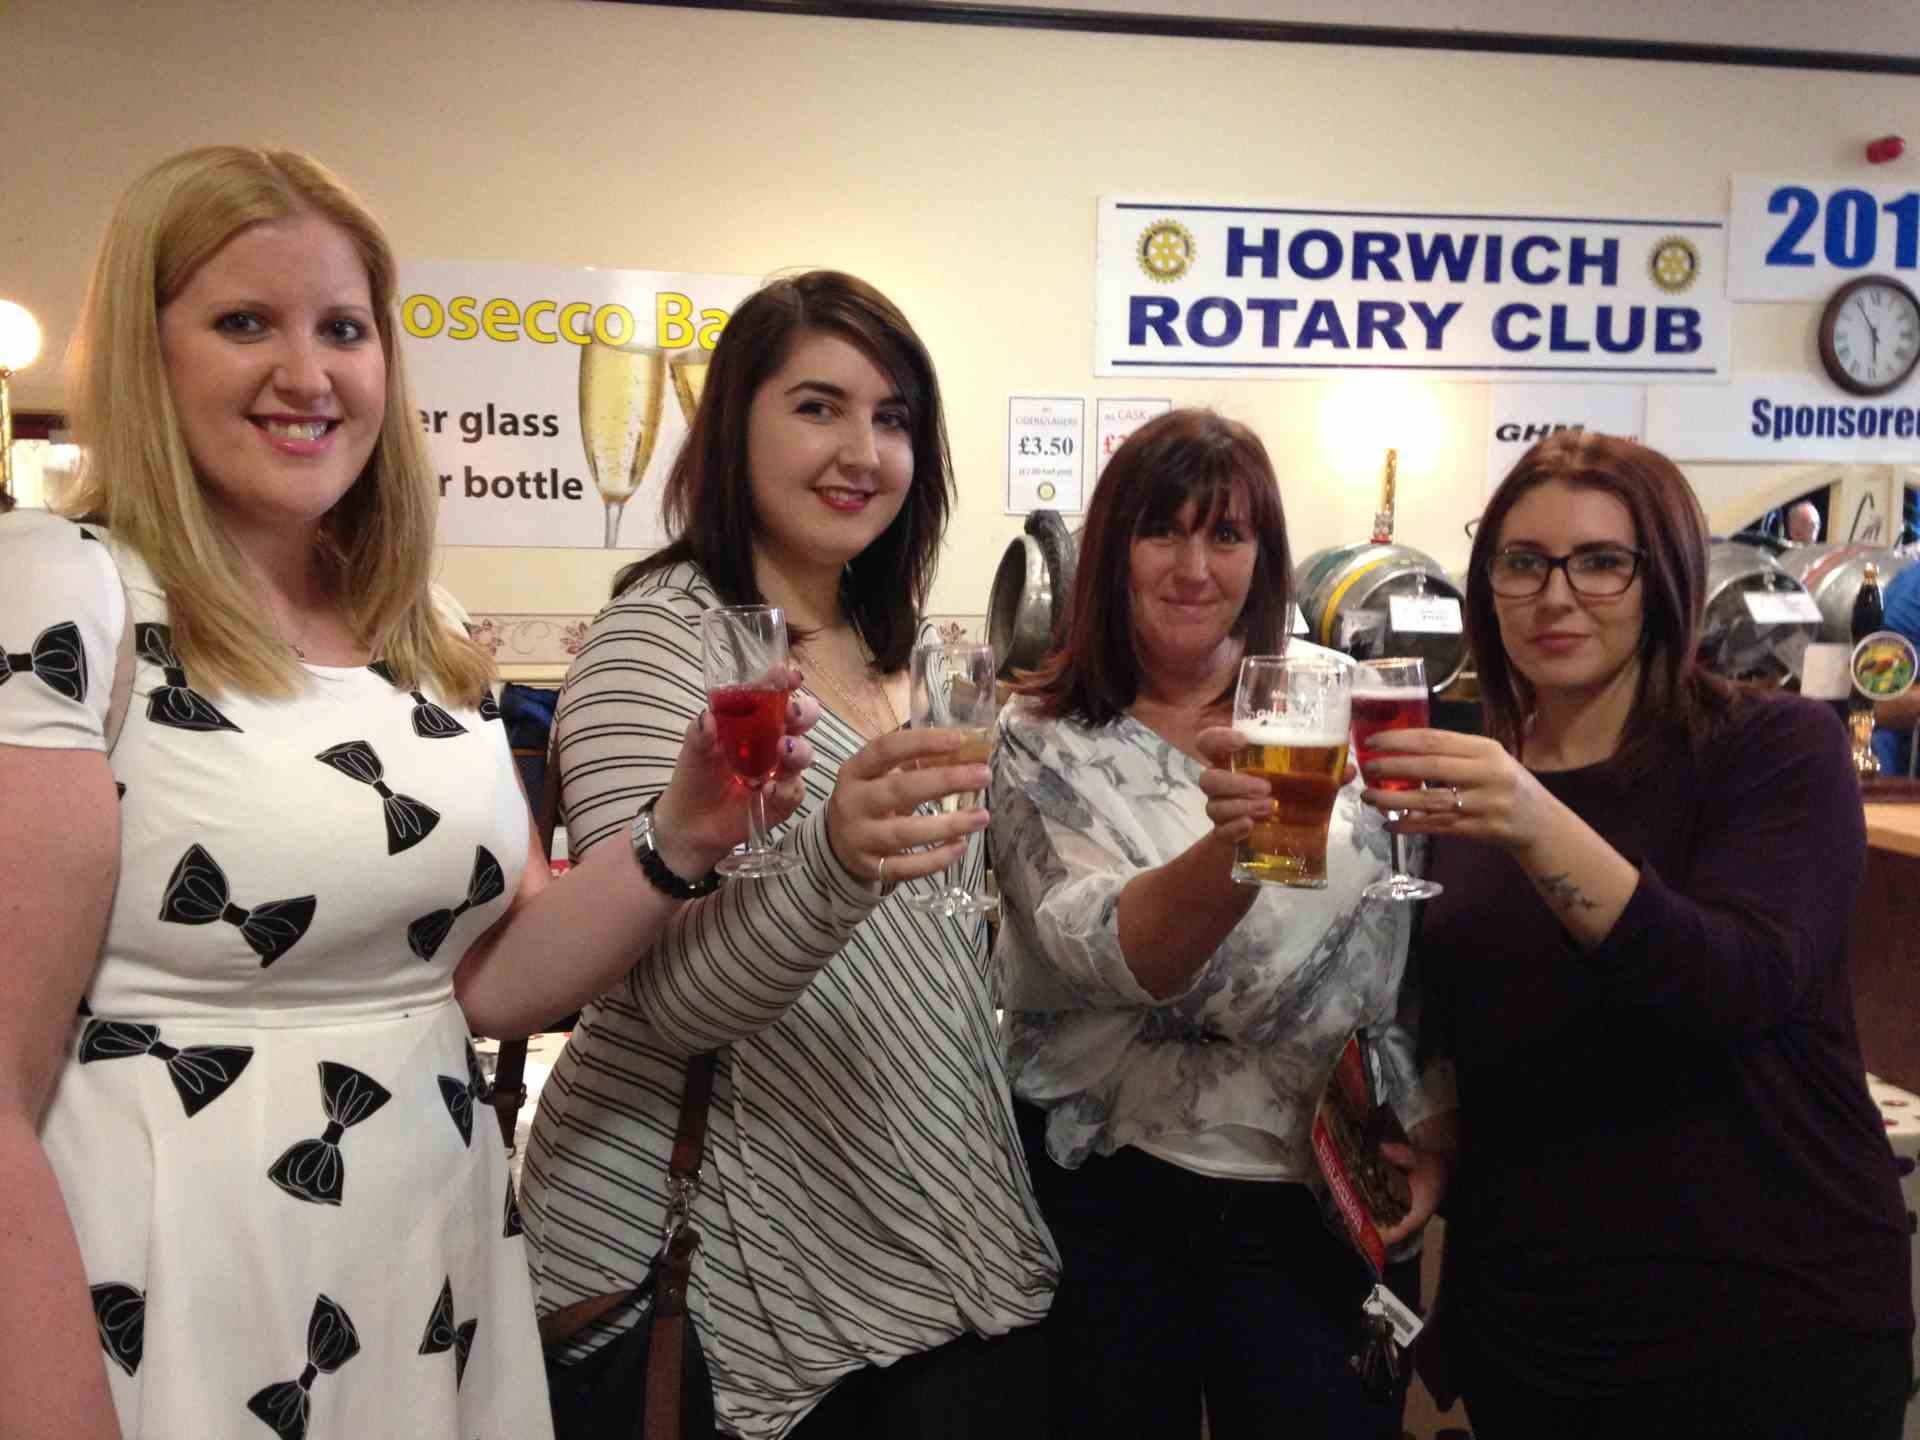 Horwich Beer Festival - some of our Team enjoying a drink